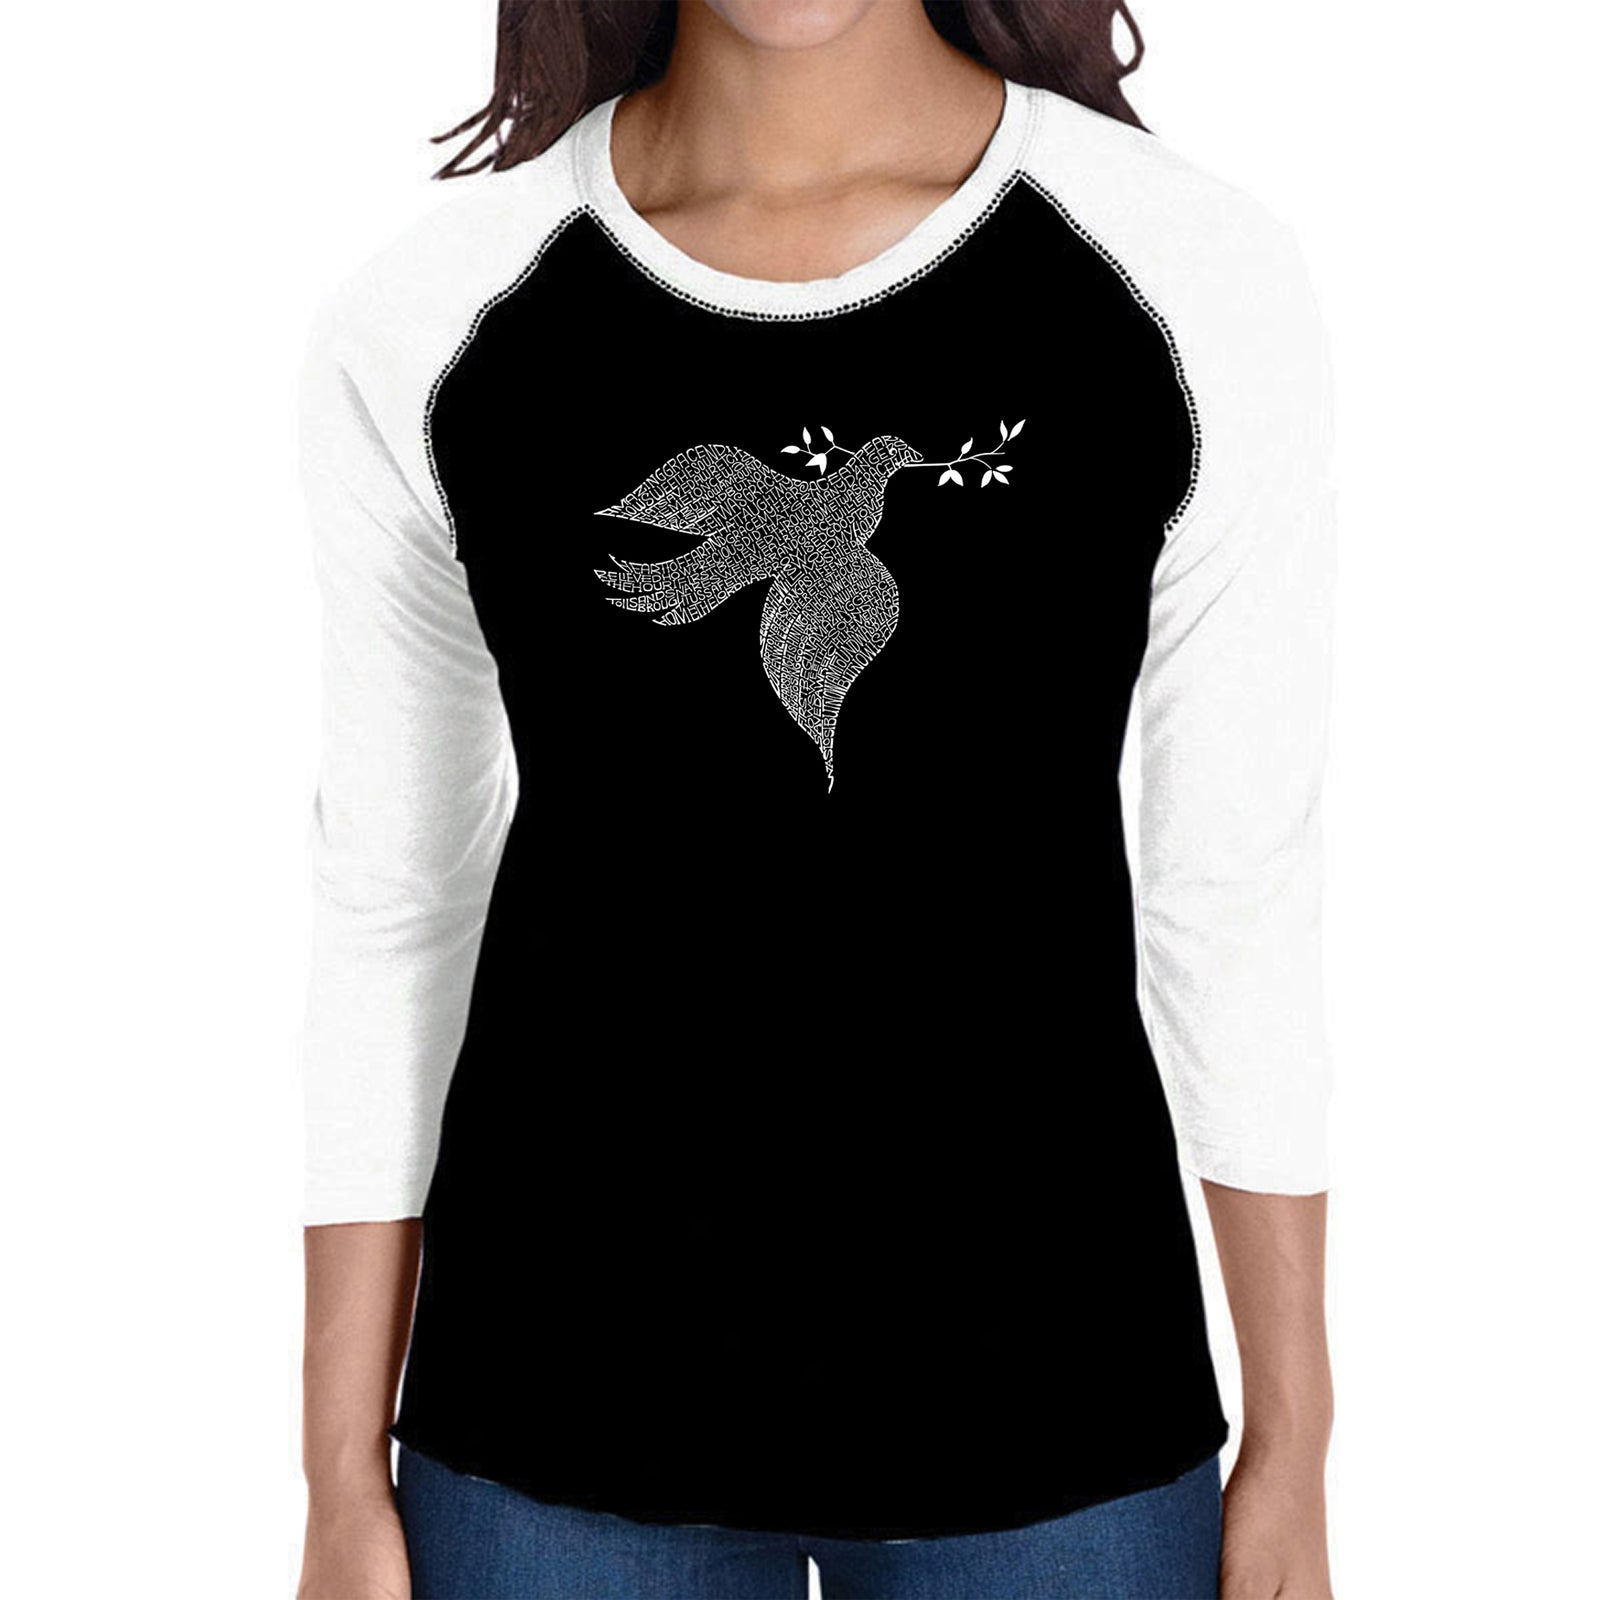 Women's Raglan Baseball Word Art T-shirt - Dove